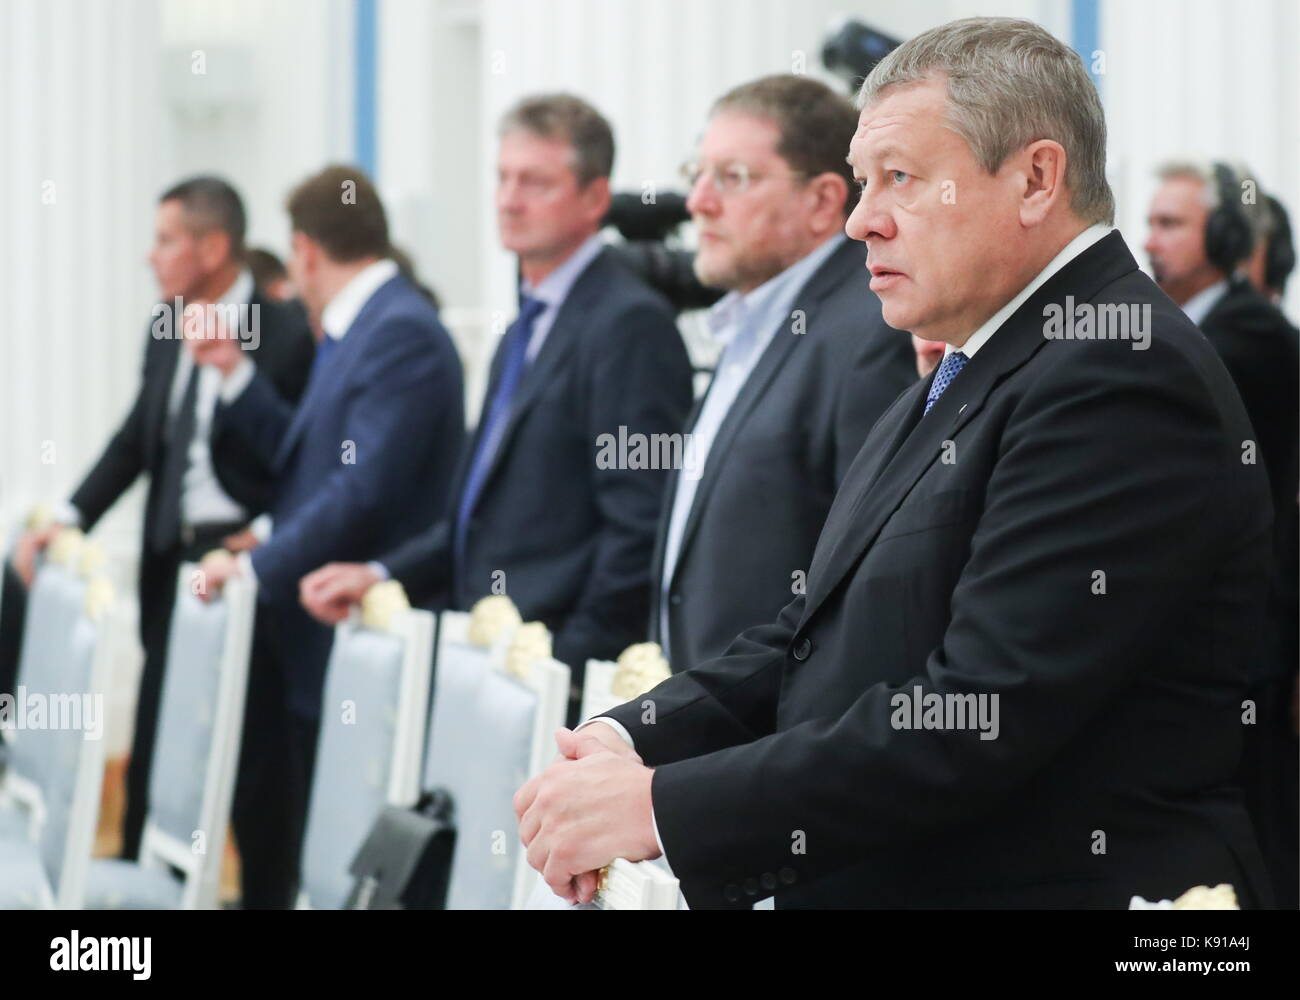 Anatoly Yakunin: biography and family of the general 68